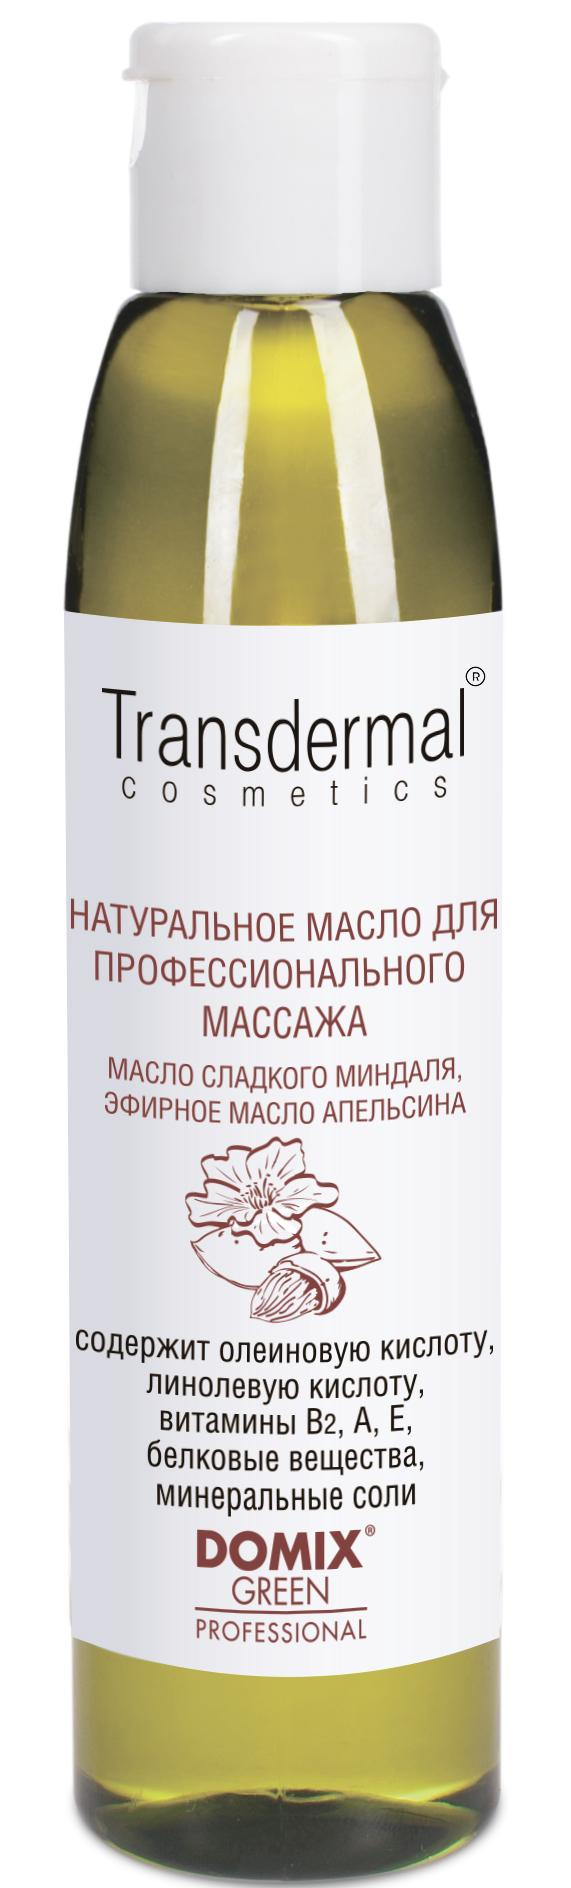 DOMIX Масло сладкого миндаля натуральное, эфирное масло апельсина / TRANSDERMAL COSMETICS 136 мл